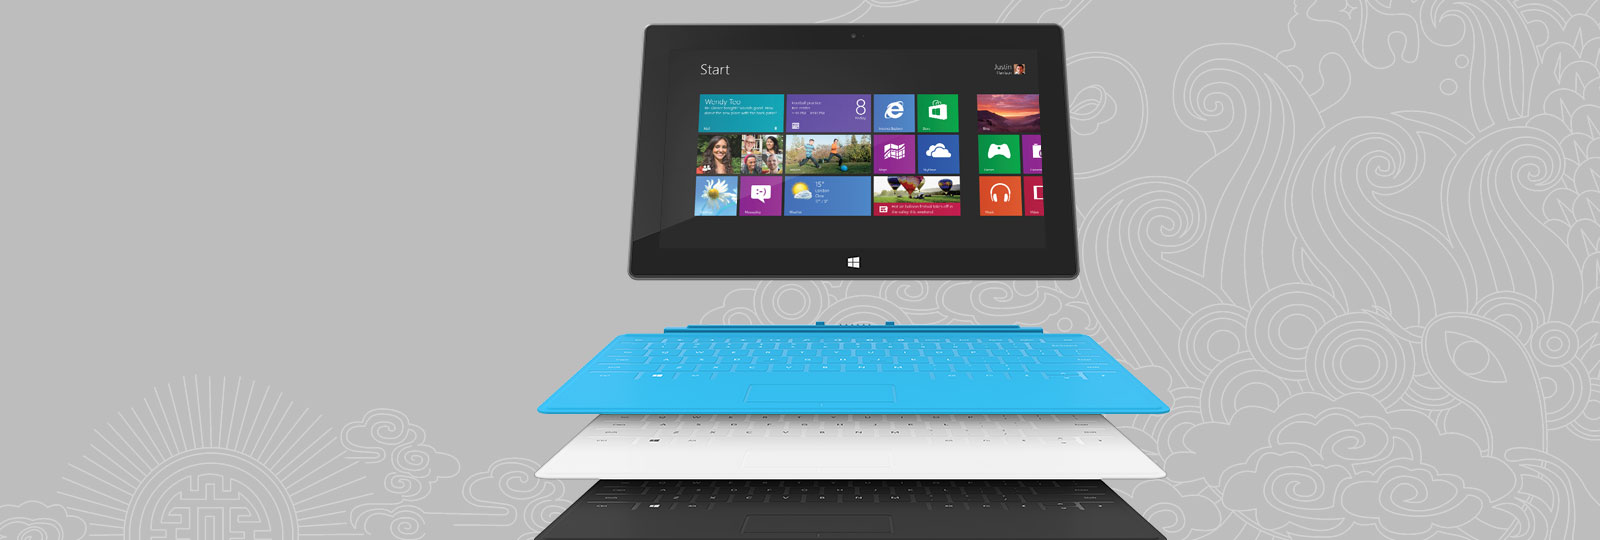 Få et gratis Touch Cover når du kjøper en Surface RT.